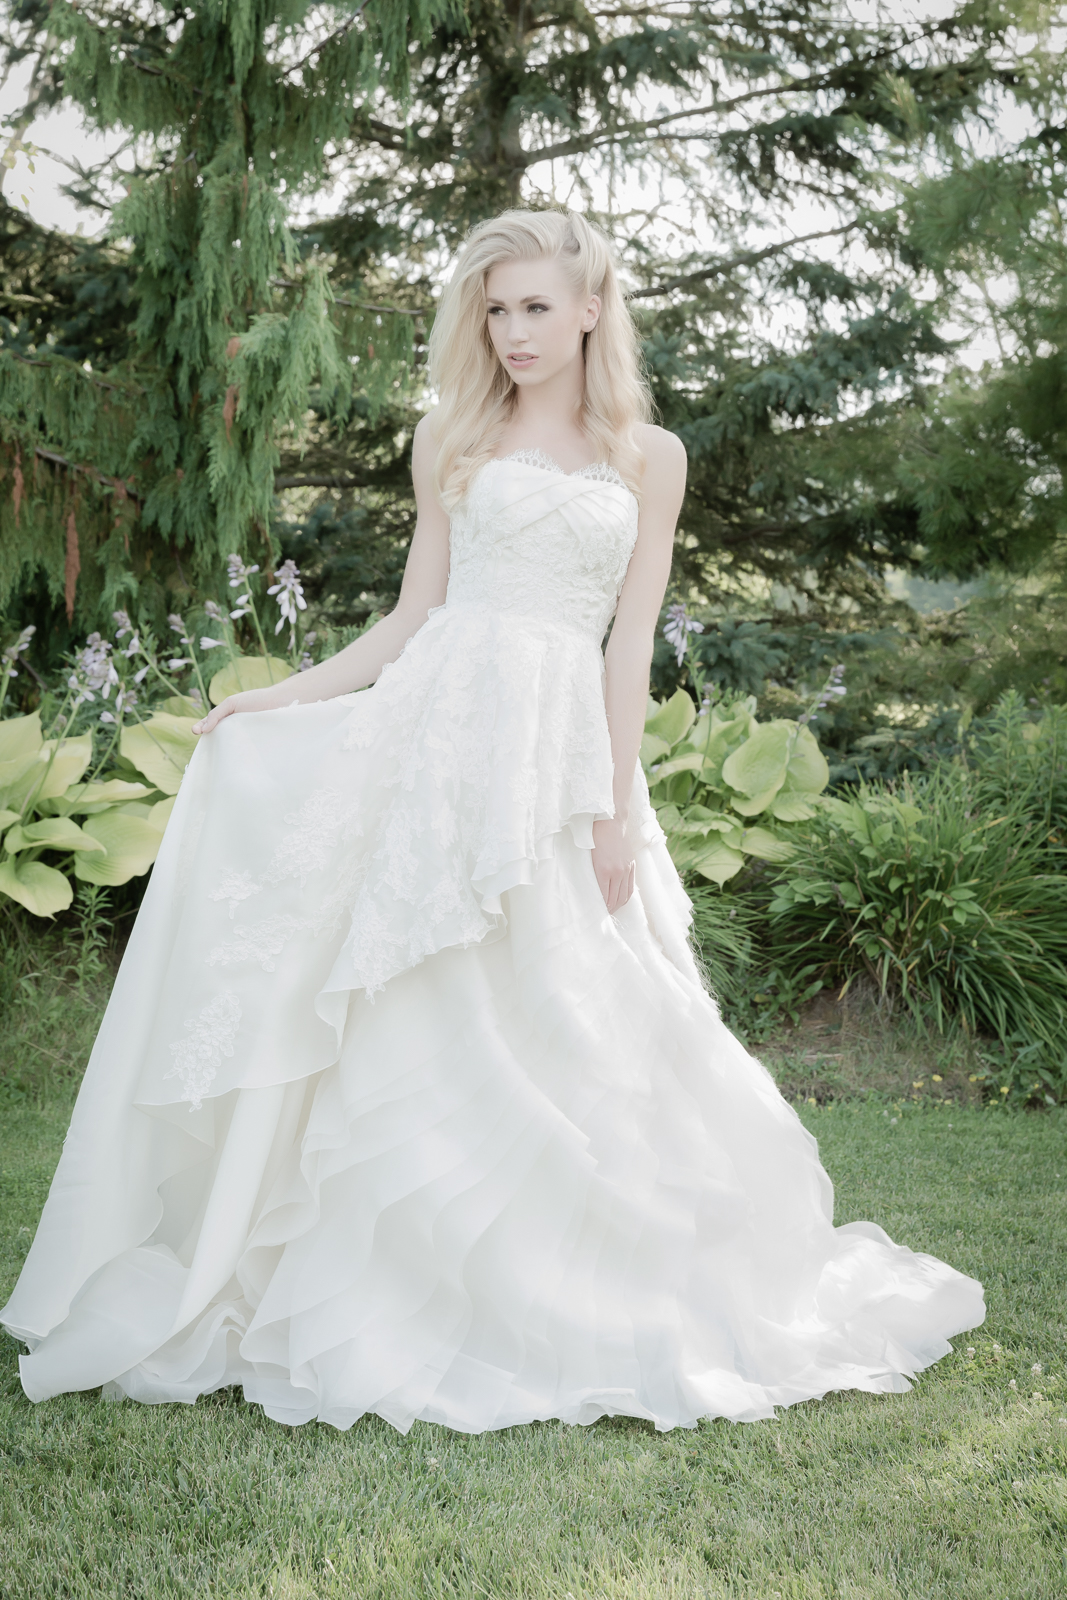 Sarah houston wedding dresses wedding dresses asian for Wedding dresses in houston texas